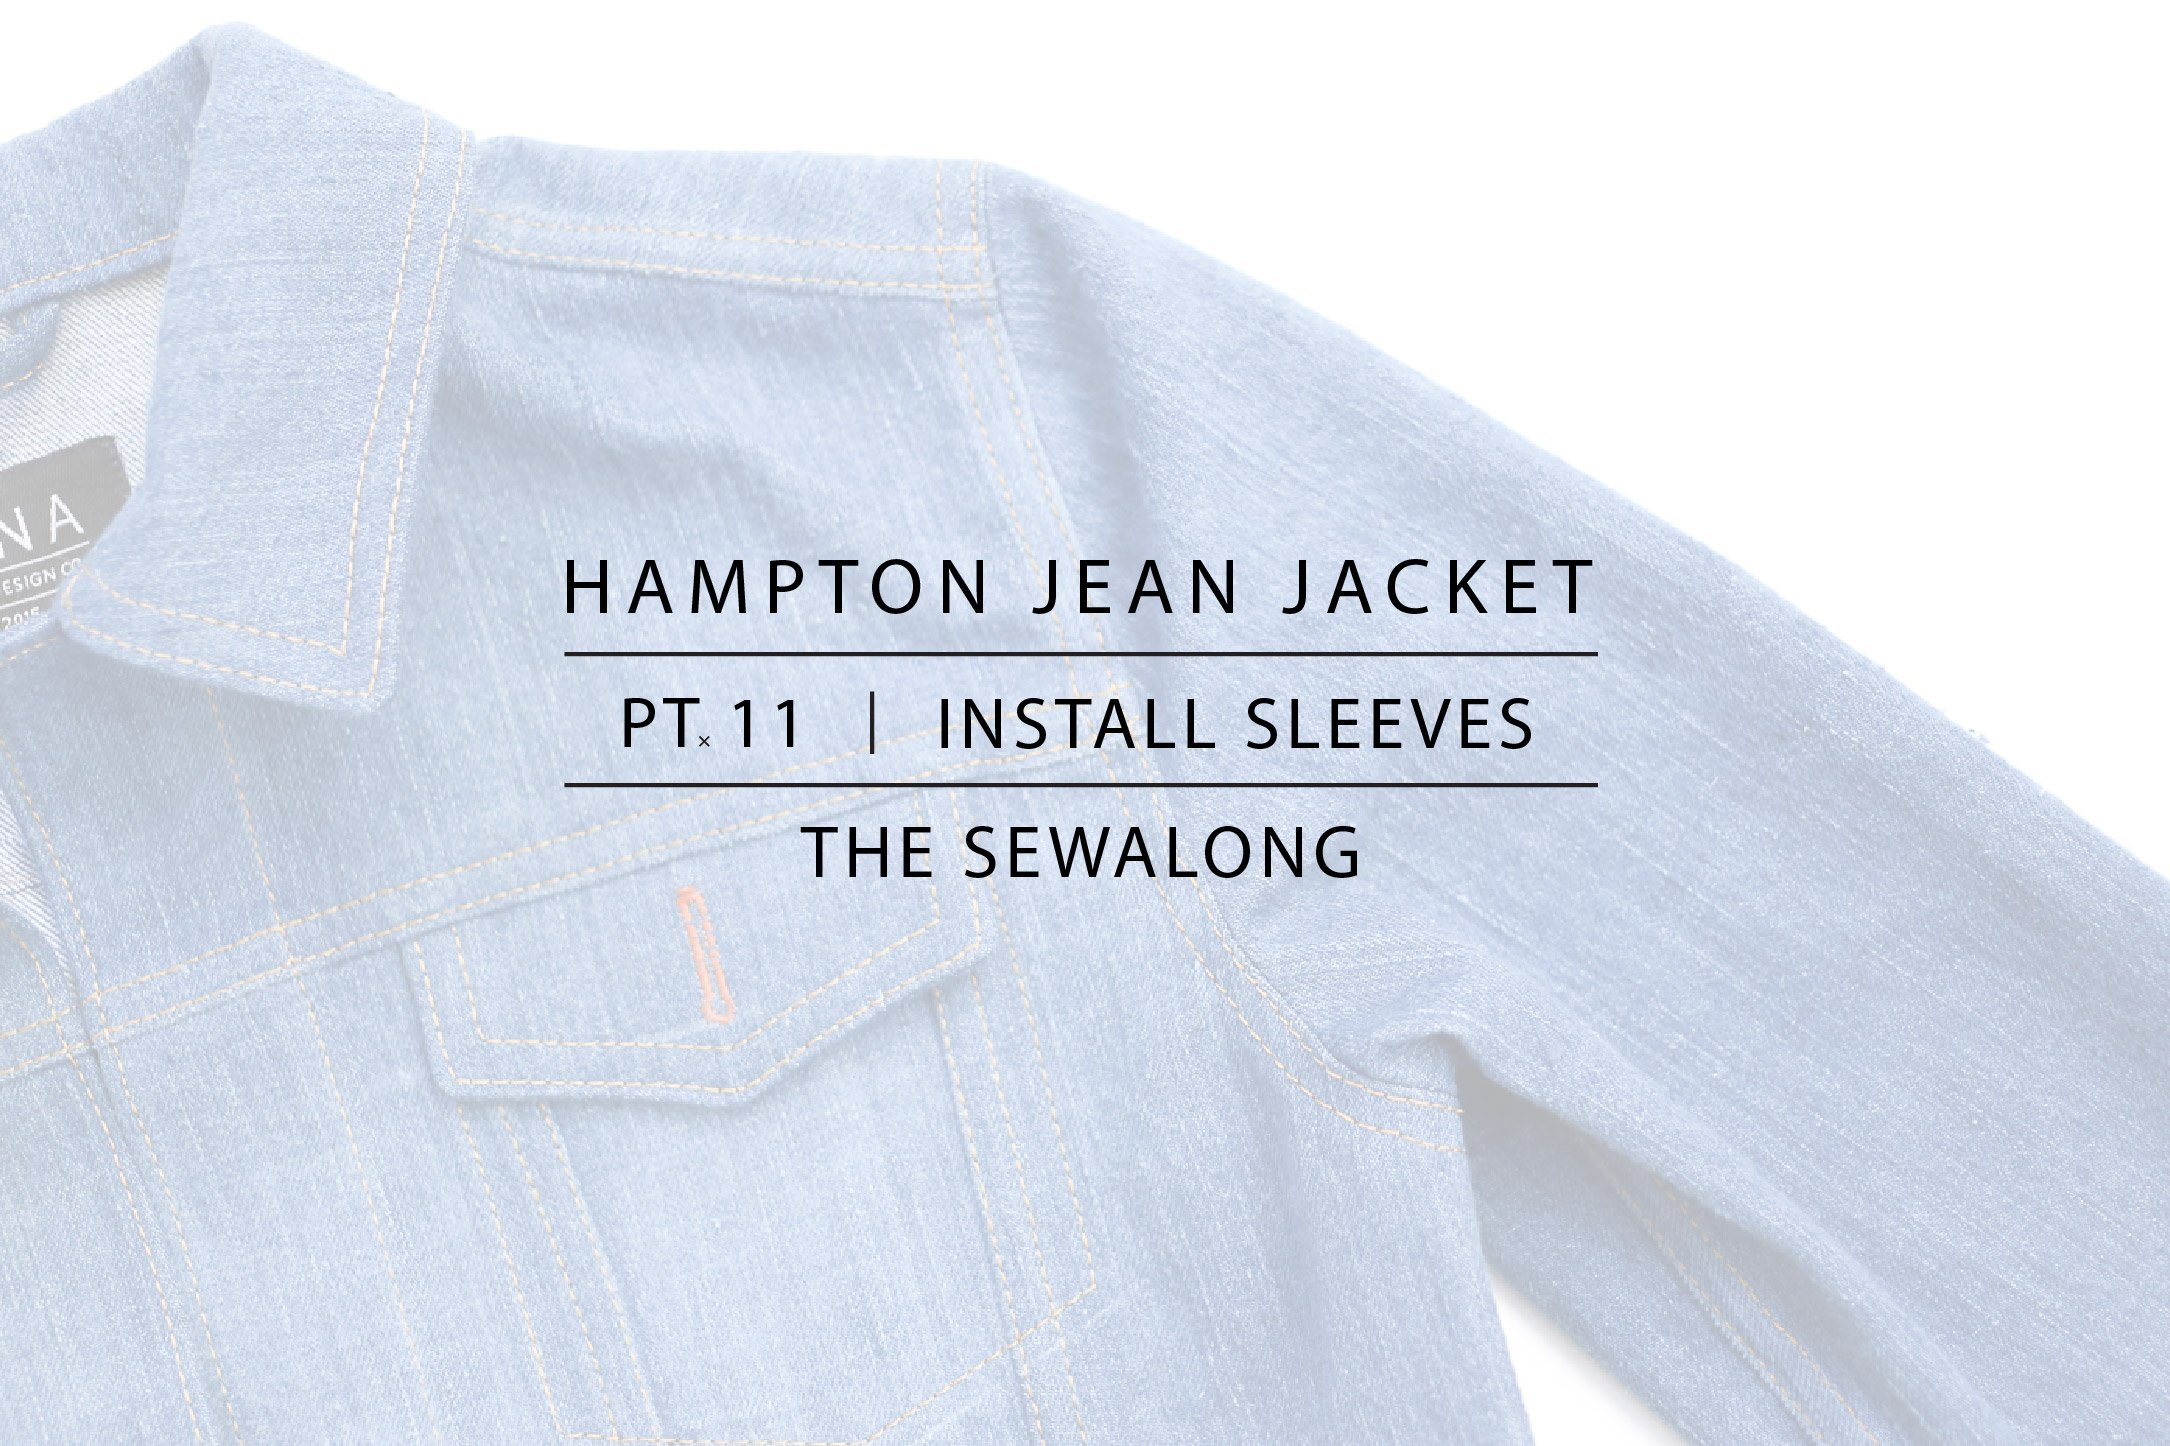 Hampton Jean Jacket Sewalong Pt. 11